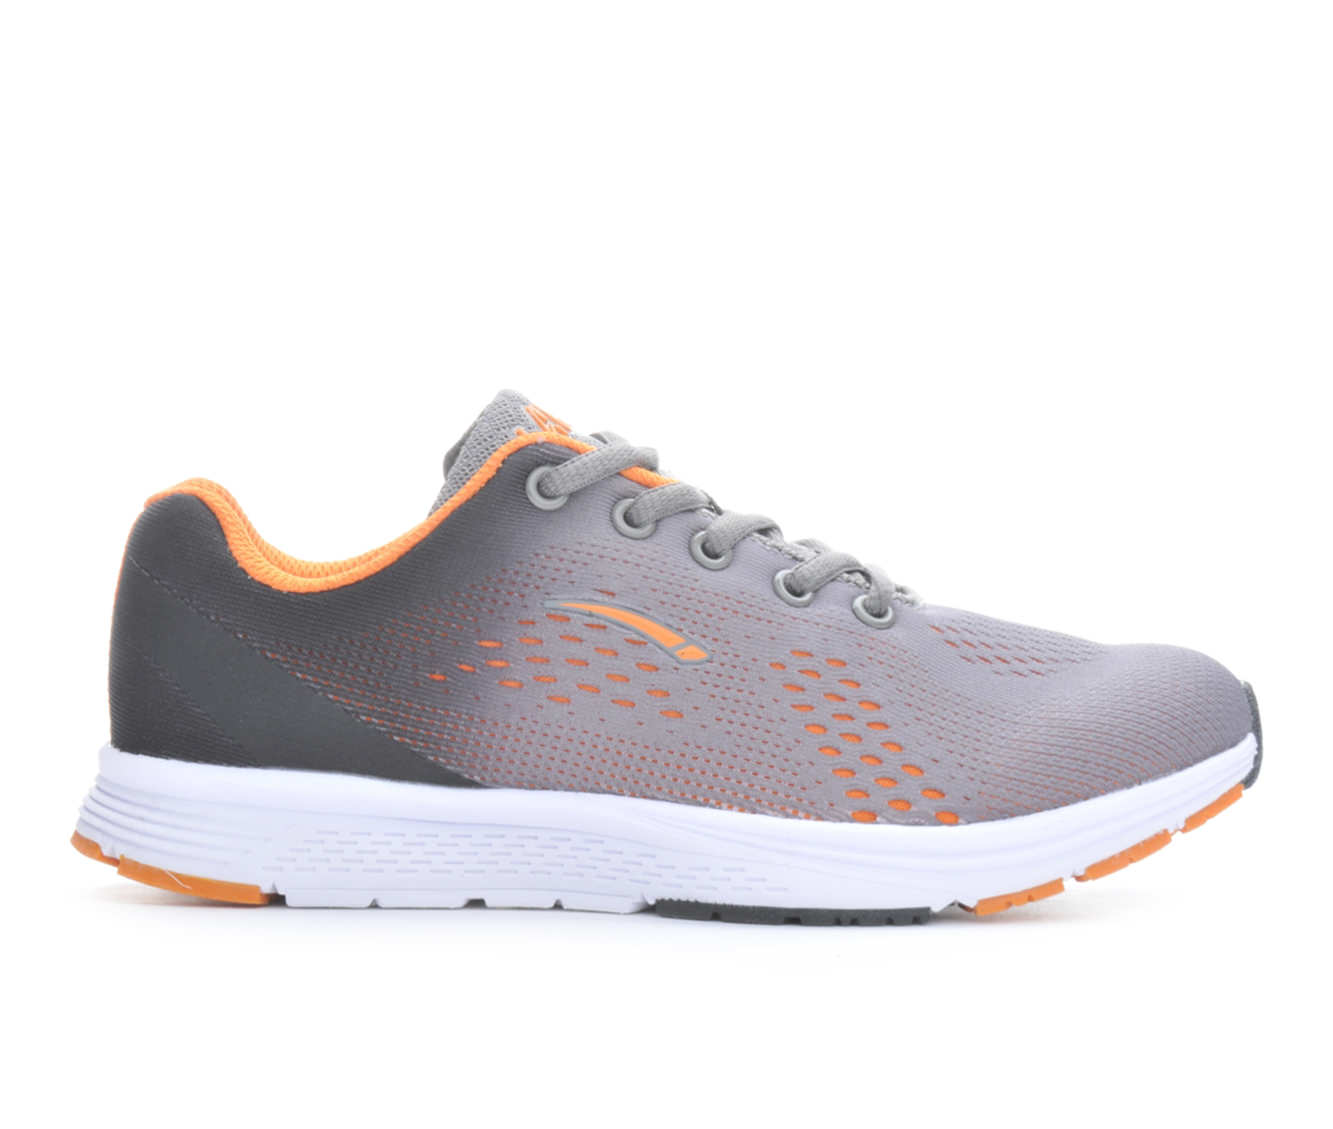 Boys' L.A. Gear Game Running Shoes (Grey)